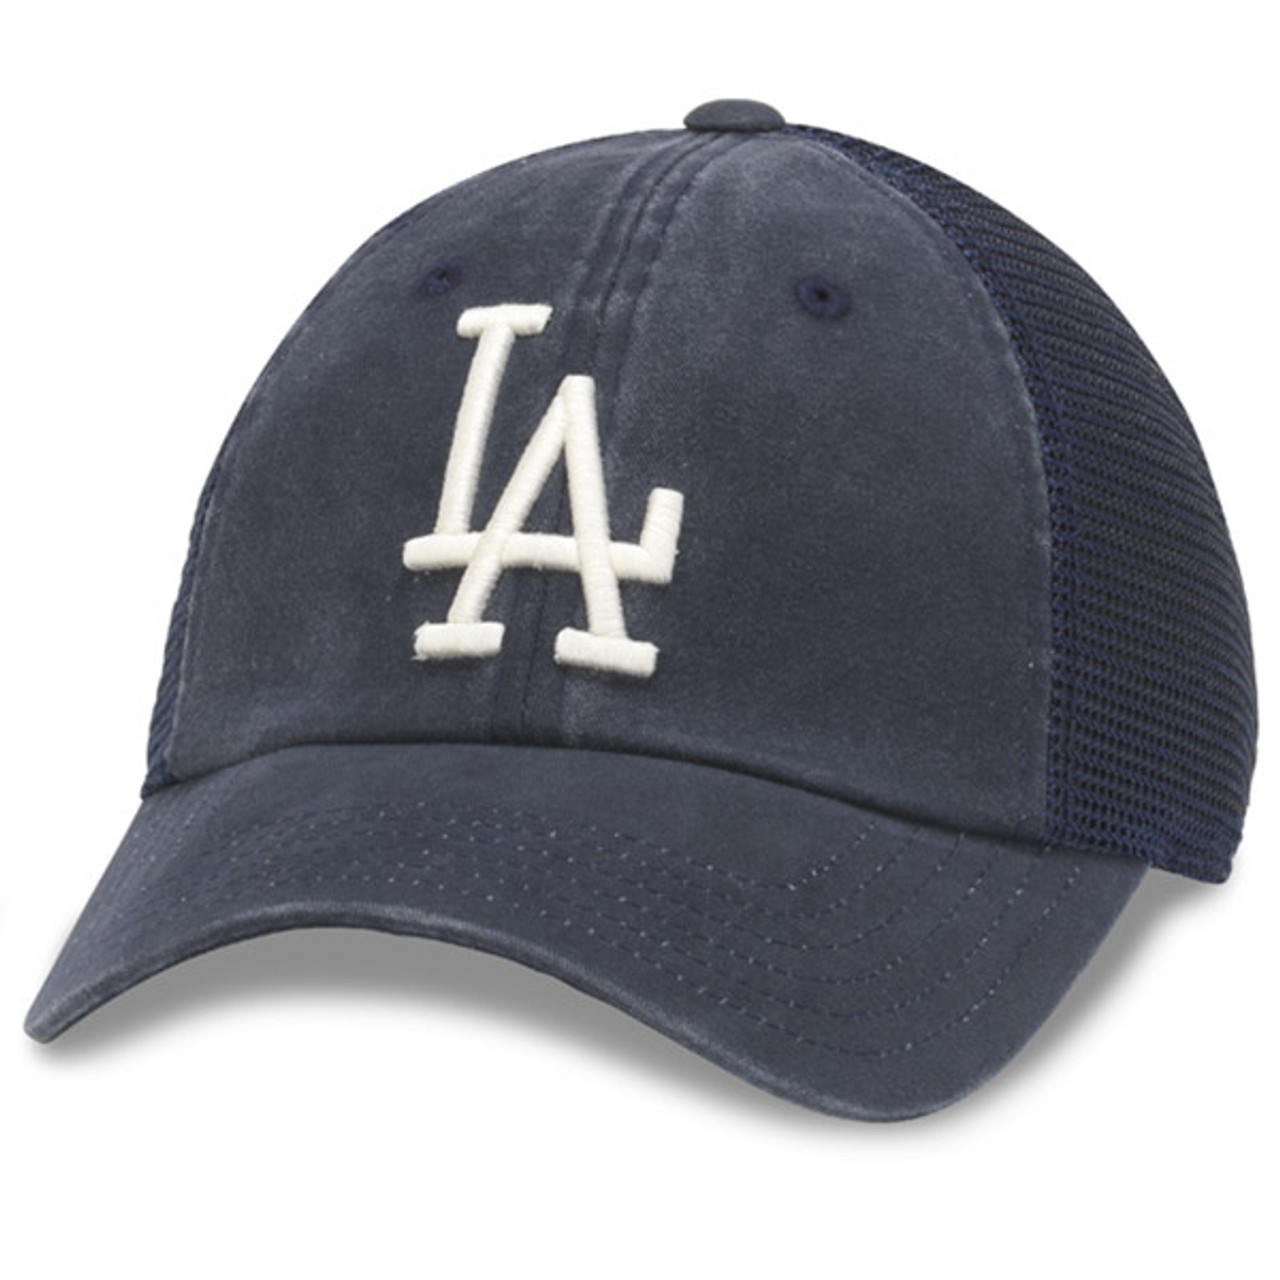 d1933ca4 American Needle - LA Dodgers Distress Mesh Baseball Cap